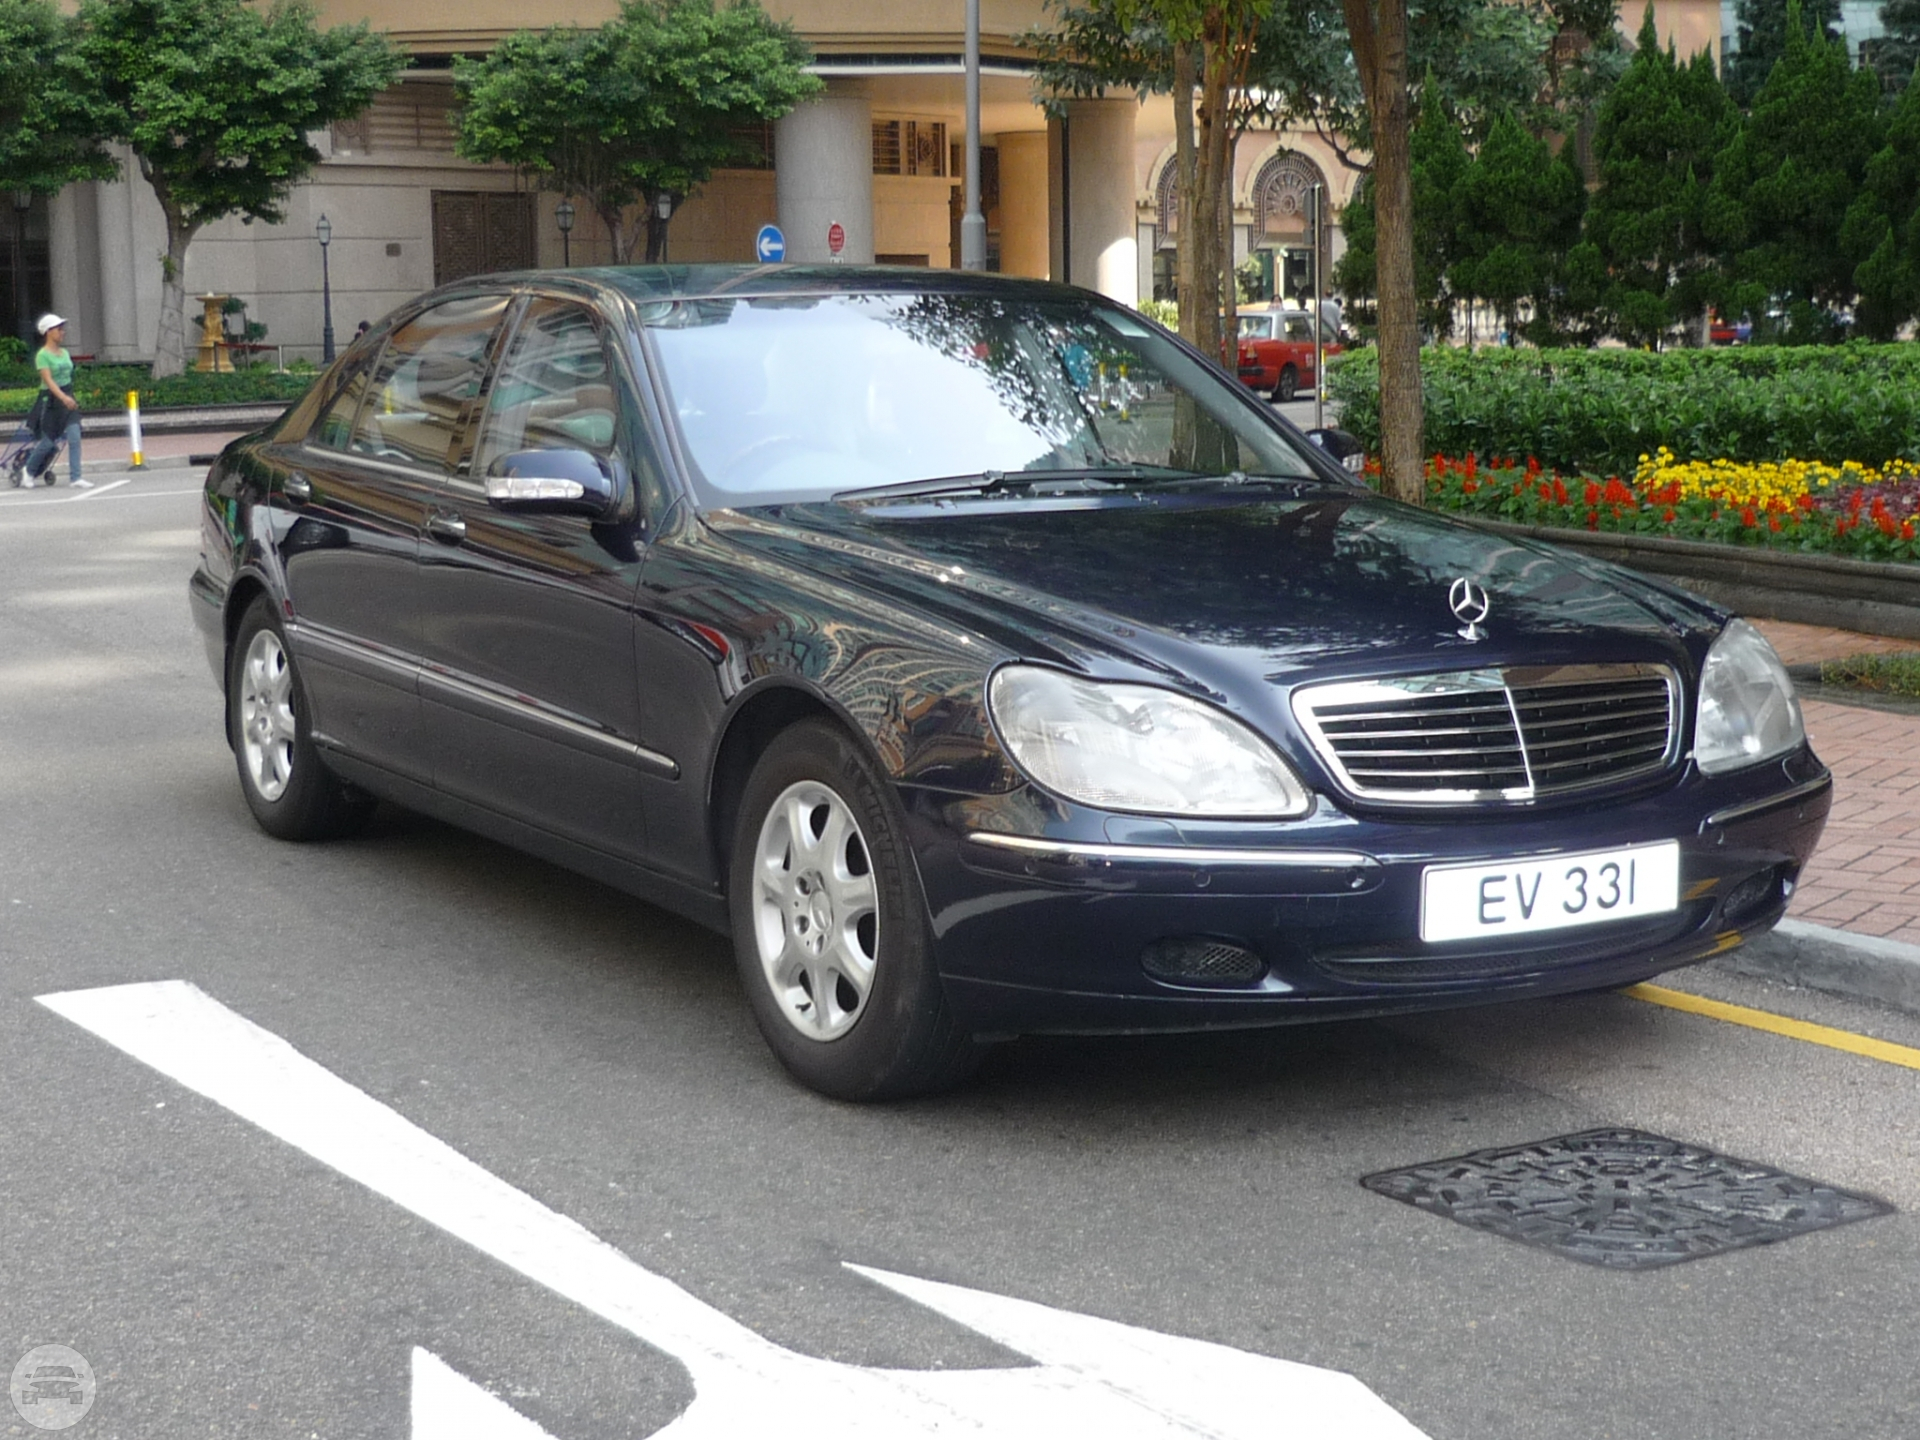 Mercedes Benz S320L - Dark Blue Sedan / New Territories, Hong Kong   / Hourly HKD 550.00  / Airport Transfer HKD 1,000.00